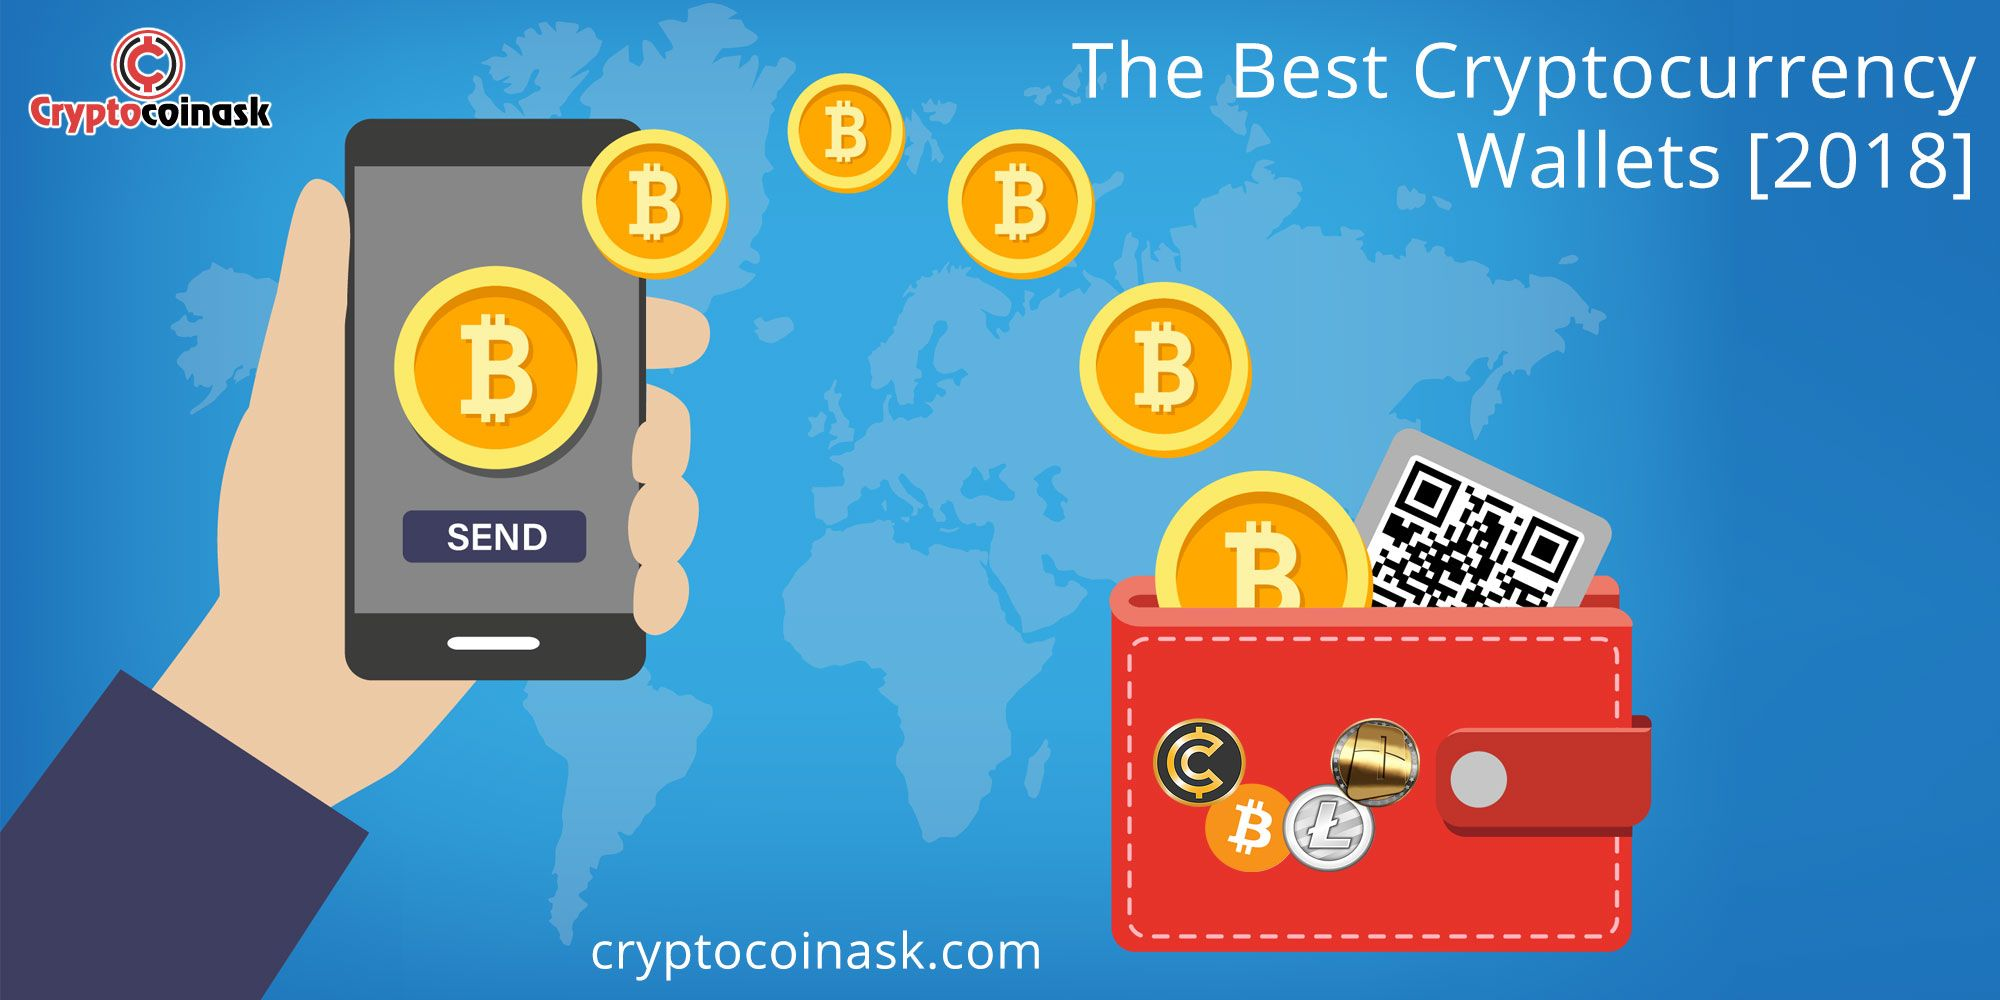 online wallets for cryptocurrencies